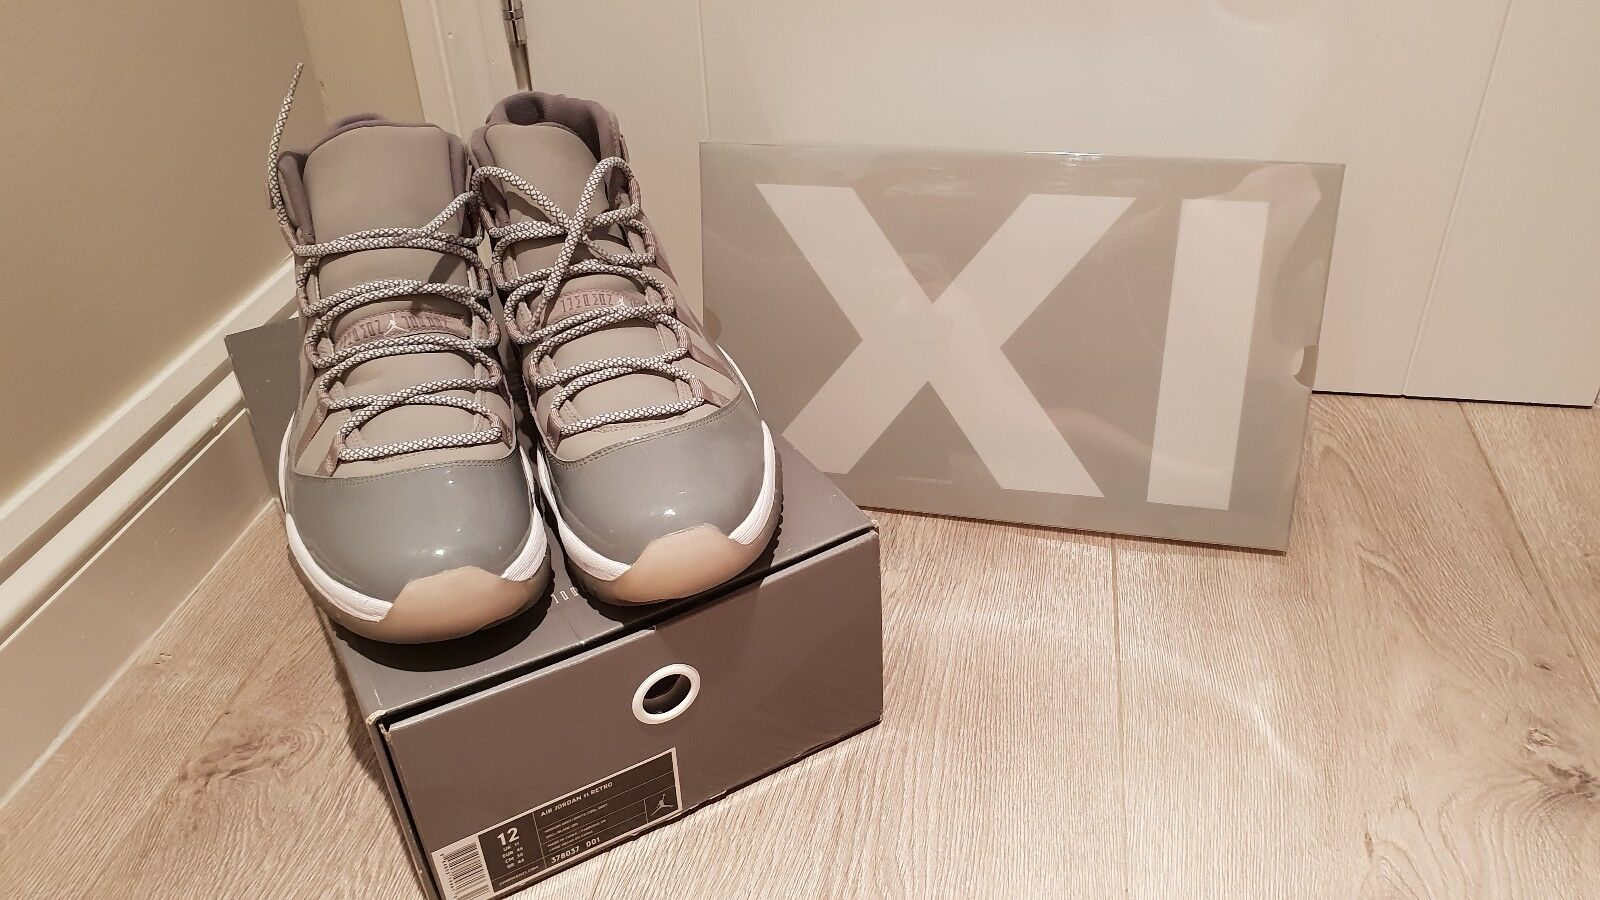 Nike Jordan XI Retro Air Alta Cool Air Retro Gris En Muy Buen Estado Rel UK11 (2010) 5c9df4